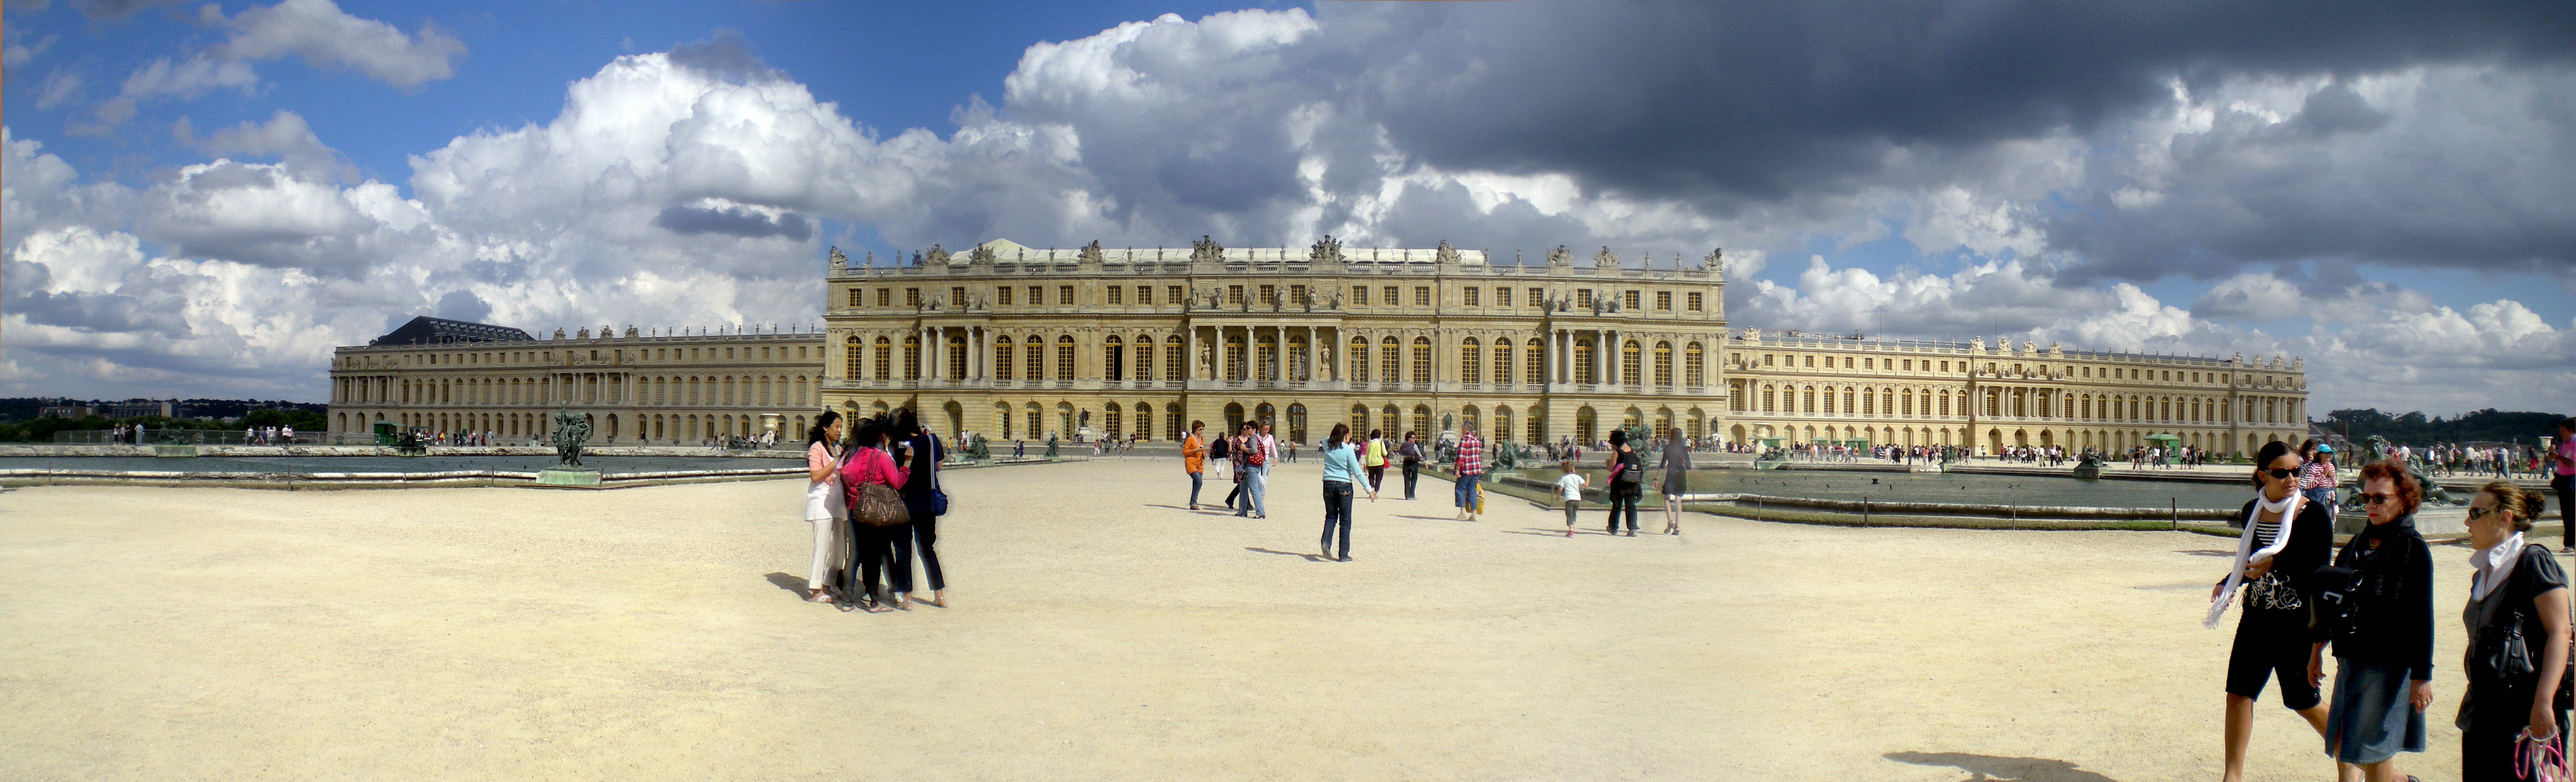 palace of versailles Discover why the palace of versailles was ranked #73 in it's '100 ultimate travel experiences of a lifetime' countdown.